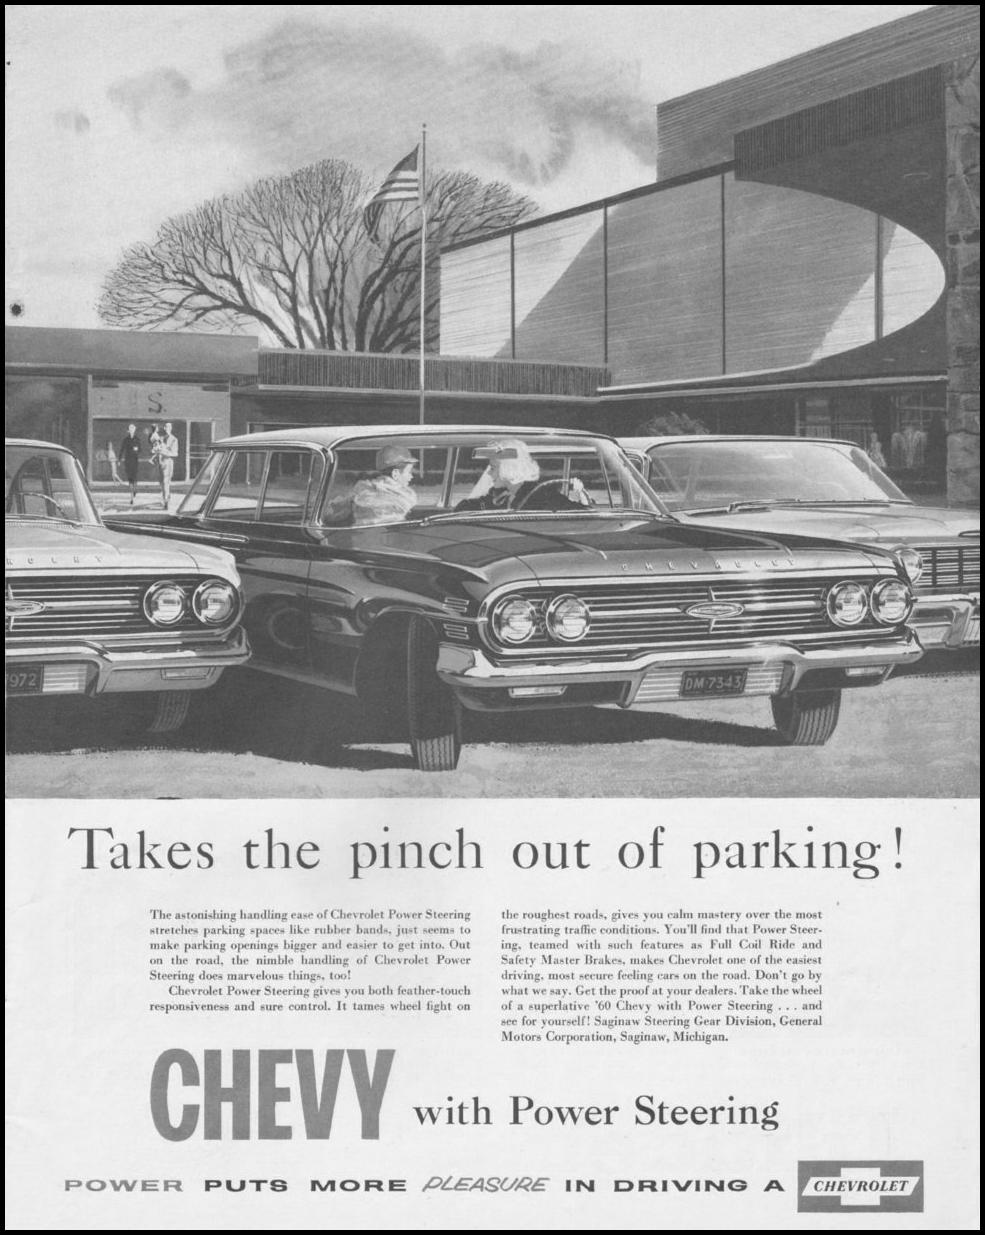 CHEVROLET AUTOMOBILES SATURDAY EVENING POST 06/11/1960 p. 13